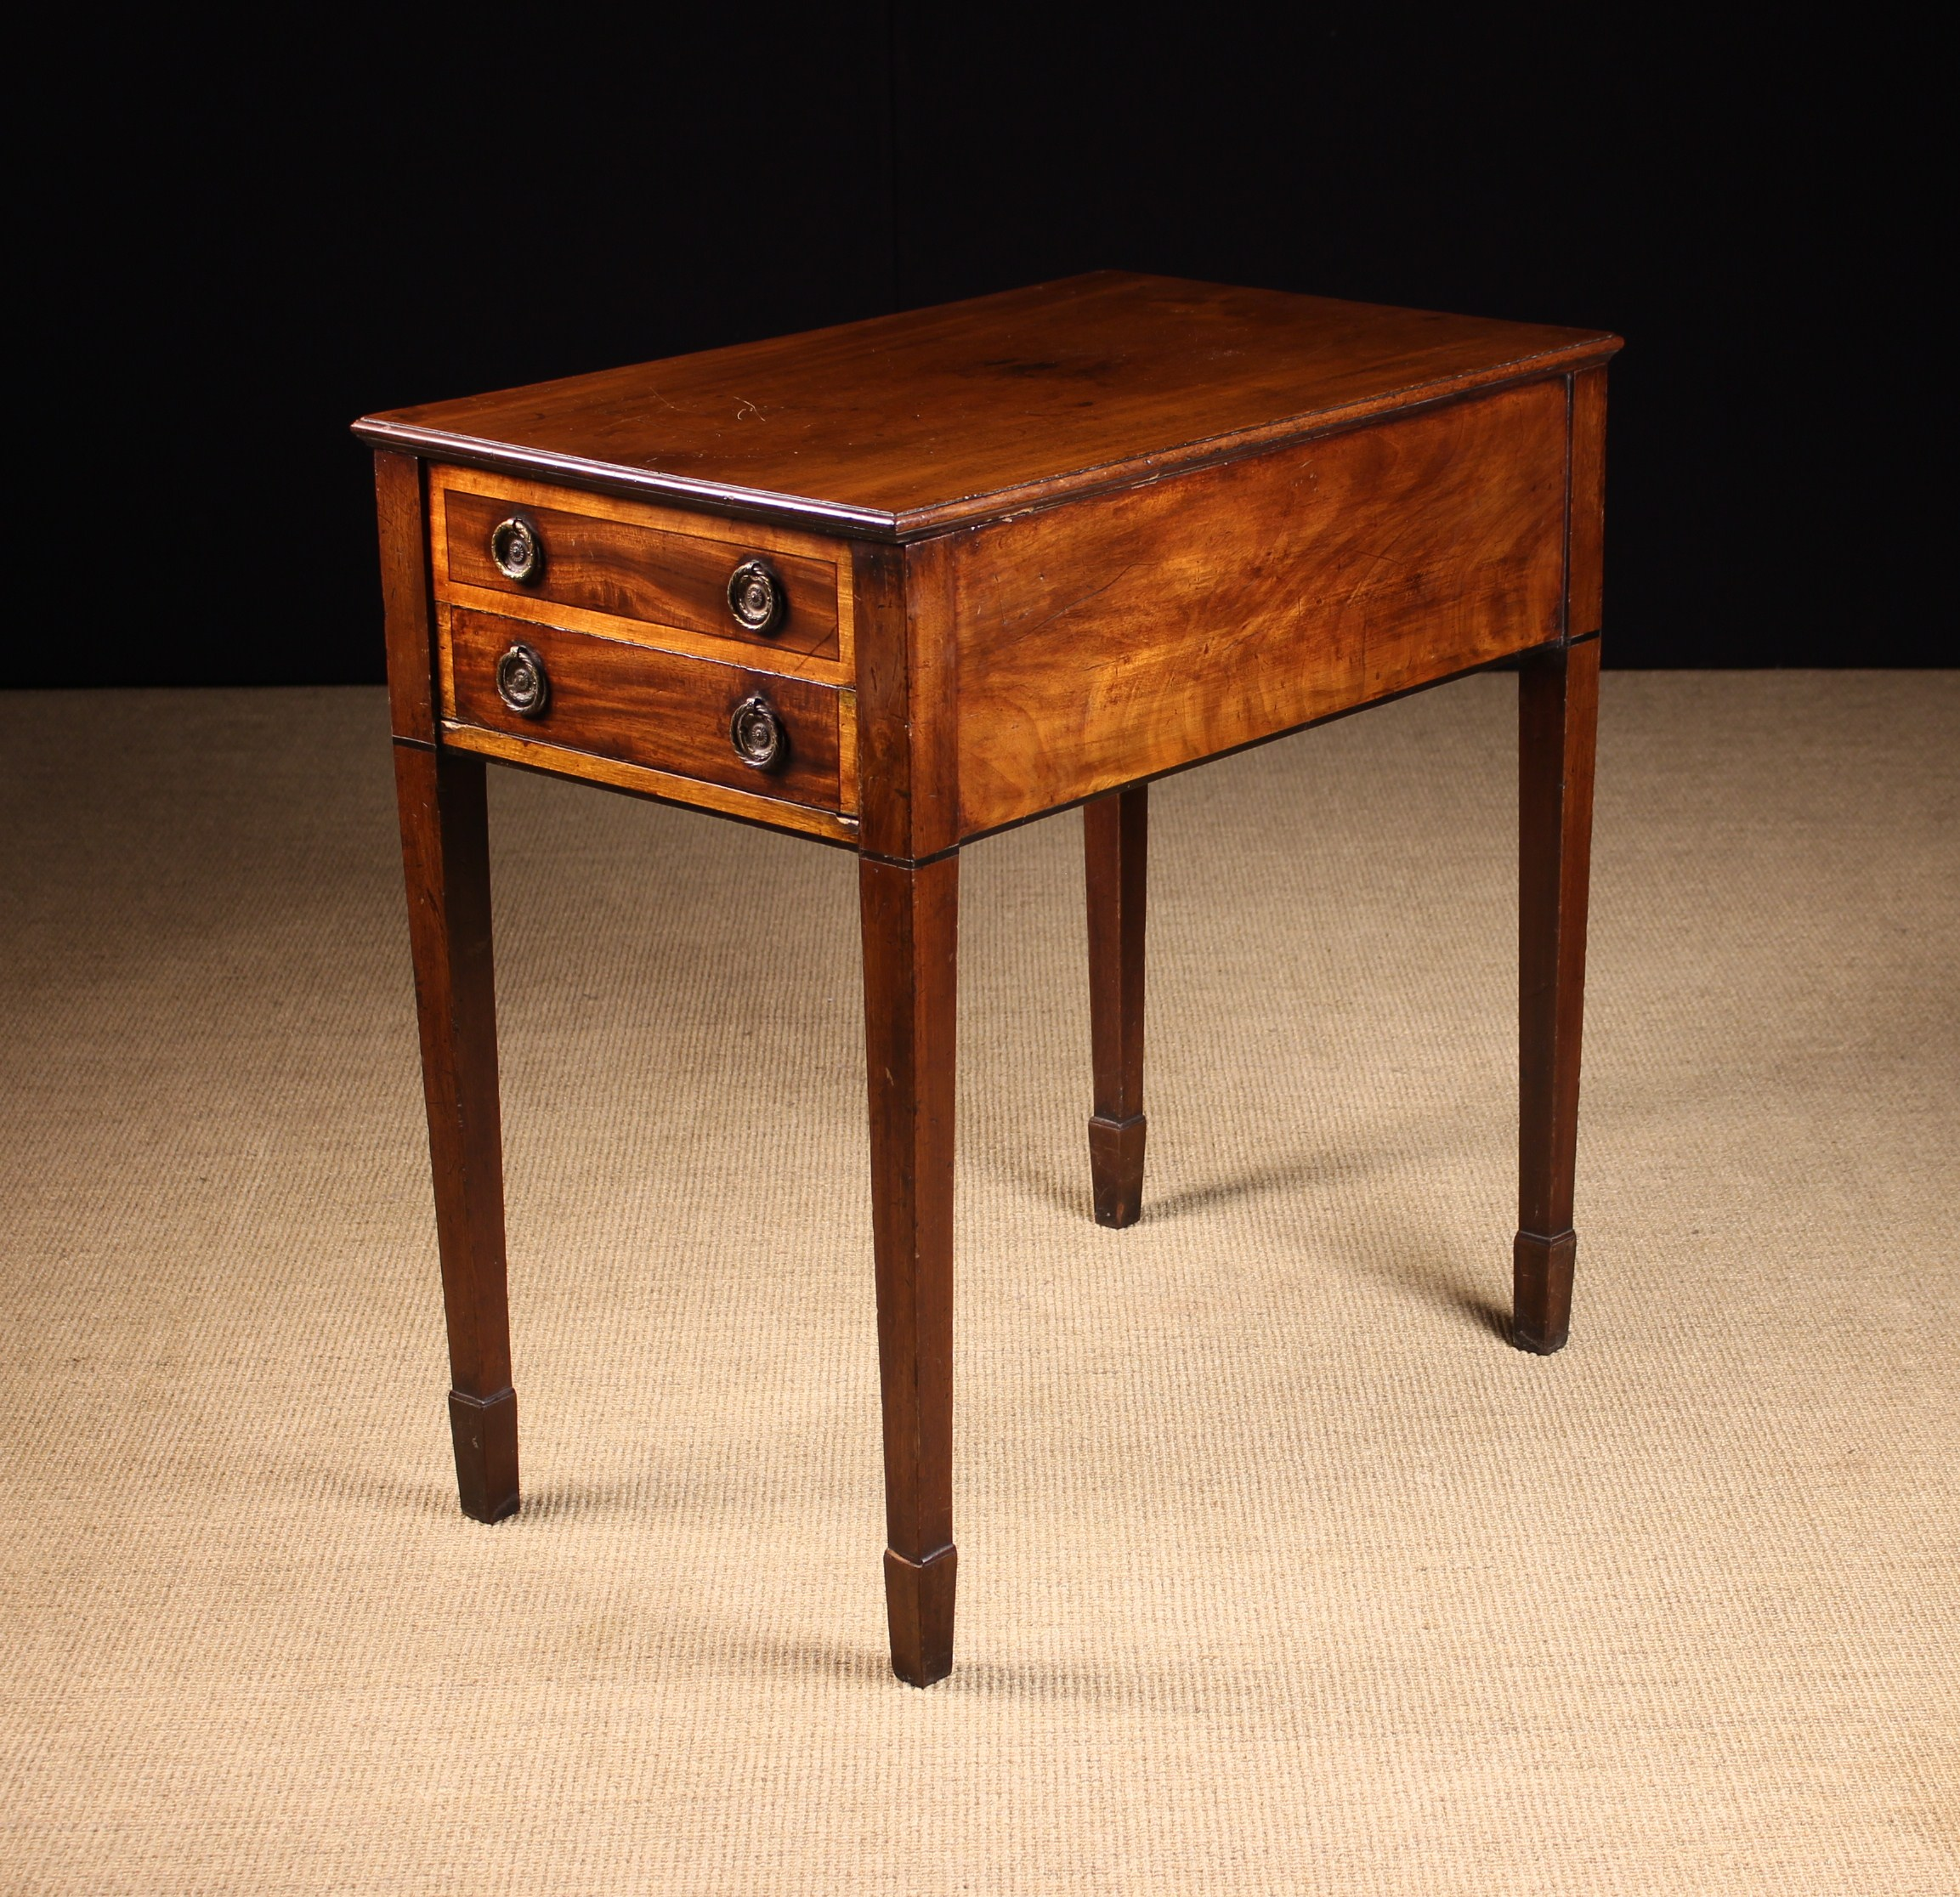 A Rare 19th Century Mahogany Metamorphic Side Table/Library Steps. - Image 2 of 2